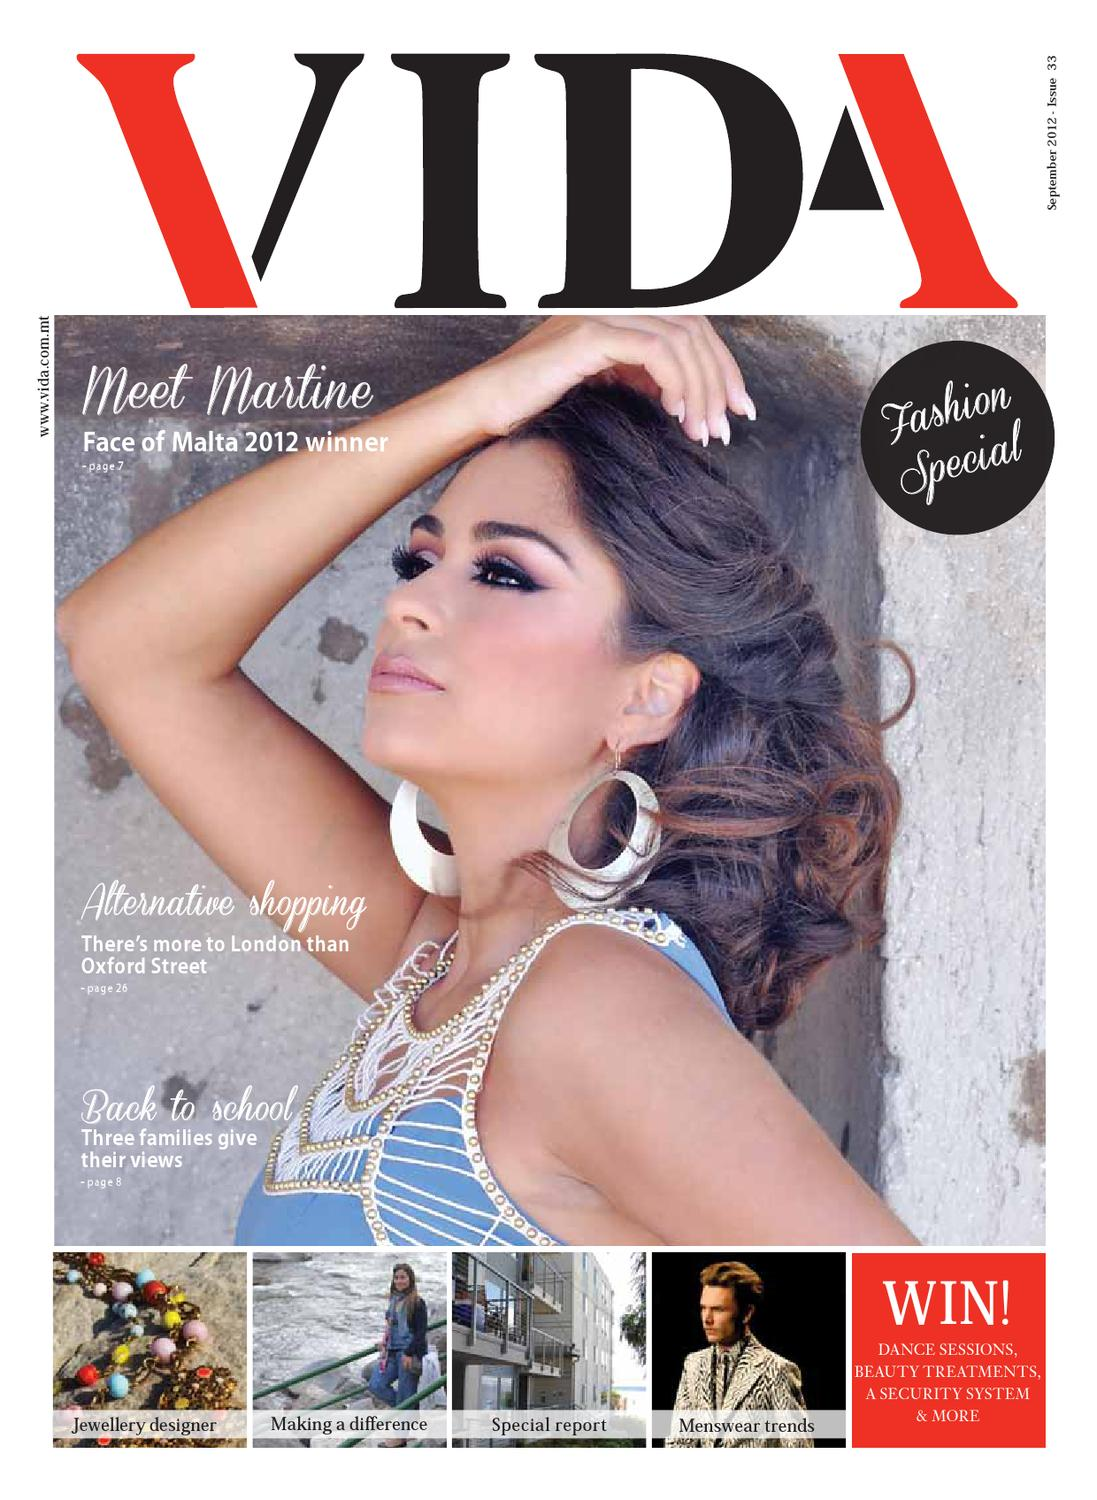 086cbb7fe8 Vida Magazine September 2012 - Issue 33 by Focused Knowledge Ltd - issuu